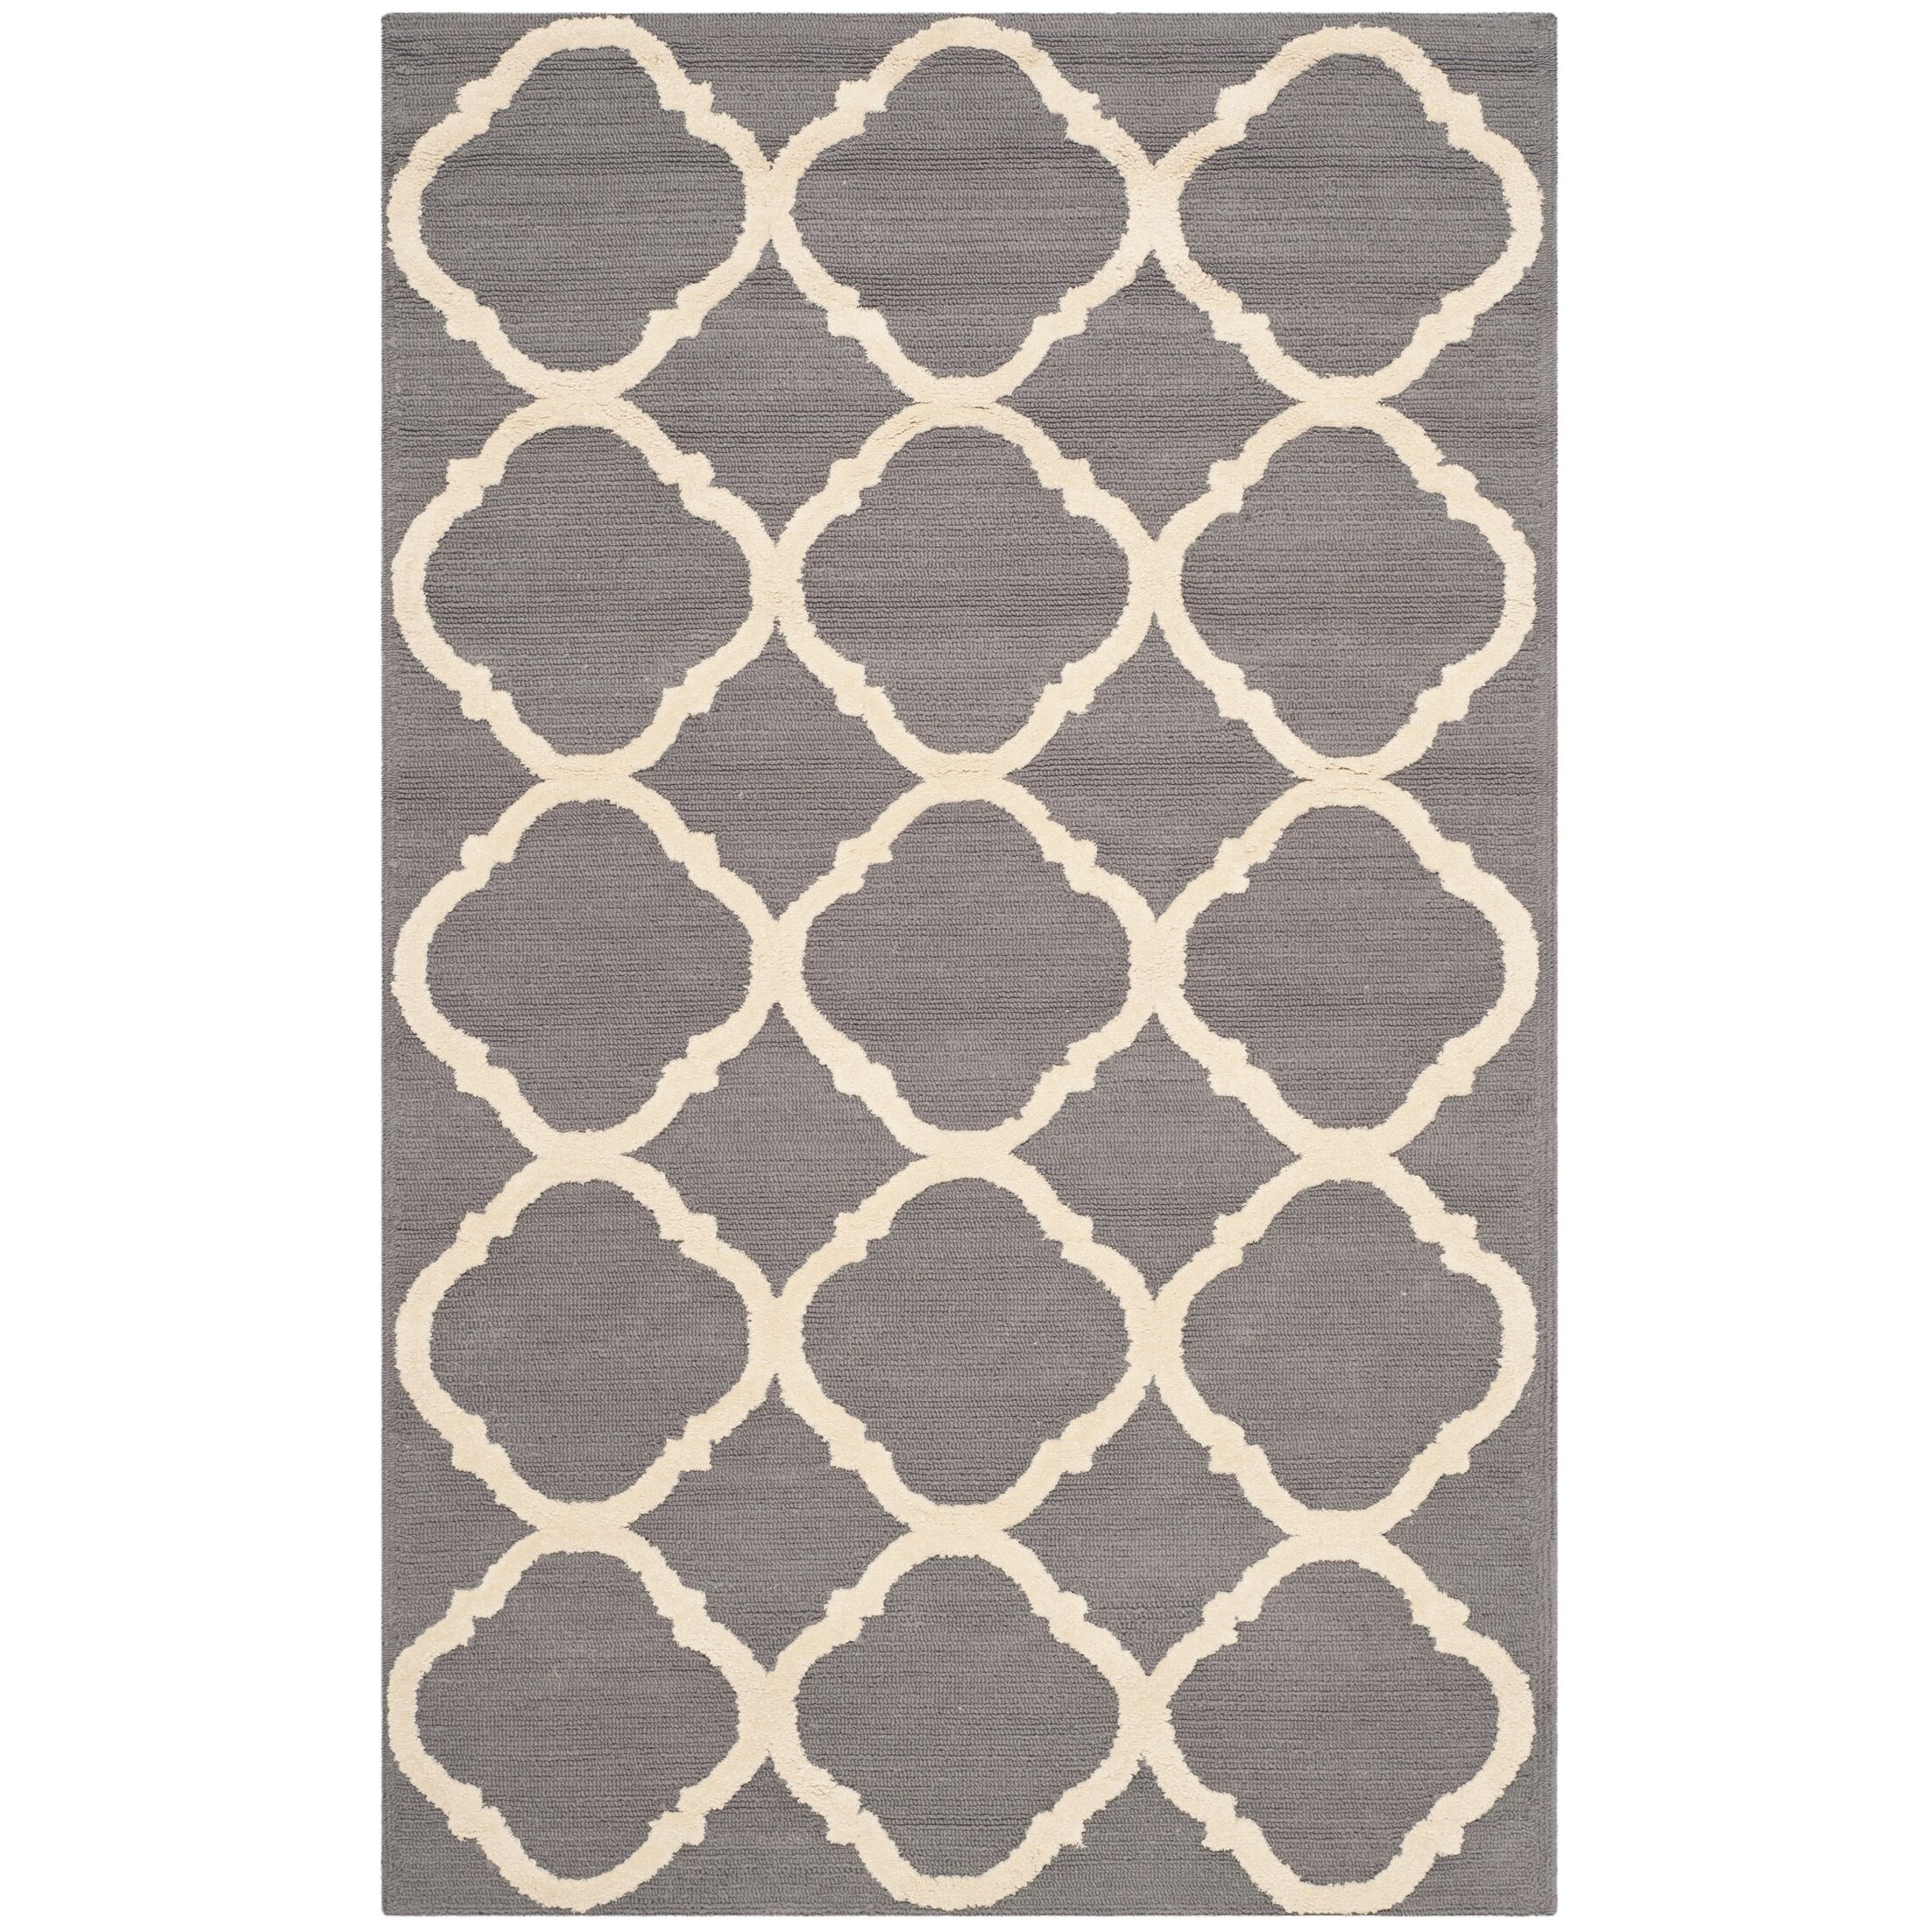 Fullerton Brown/Ivory Geometric Area Rug Rug Size: Rectangle 3'9